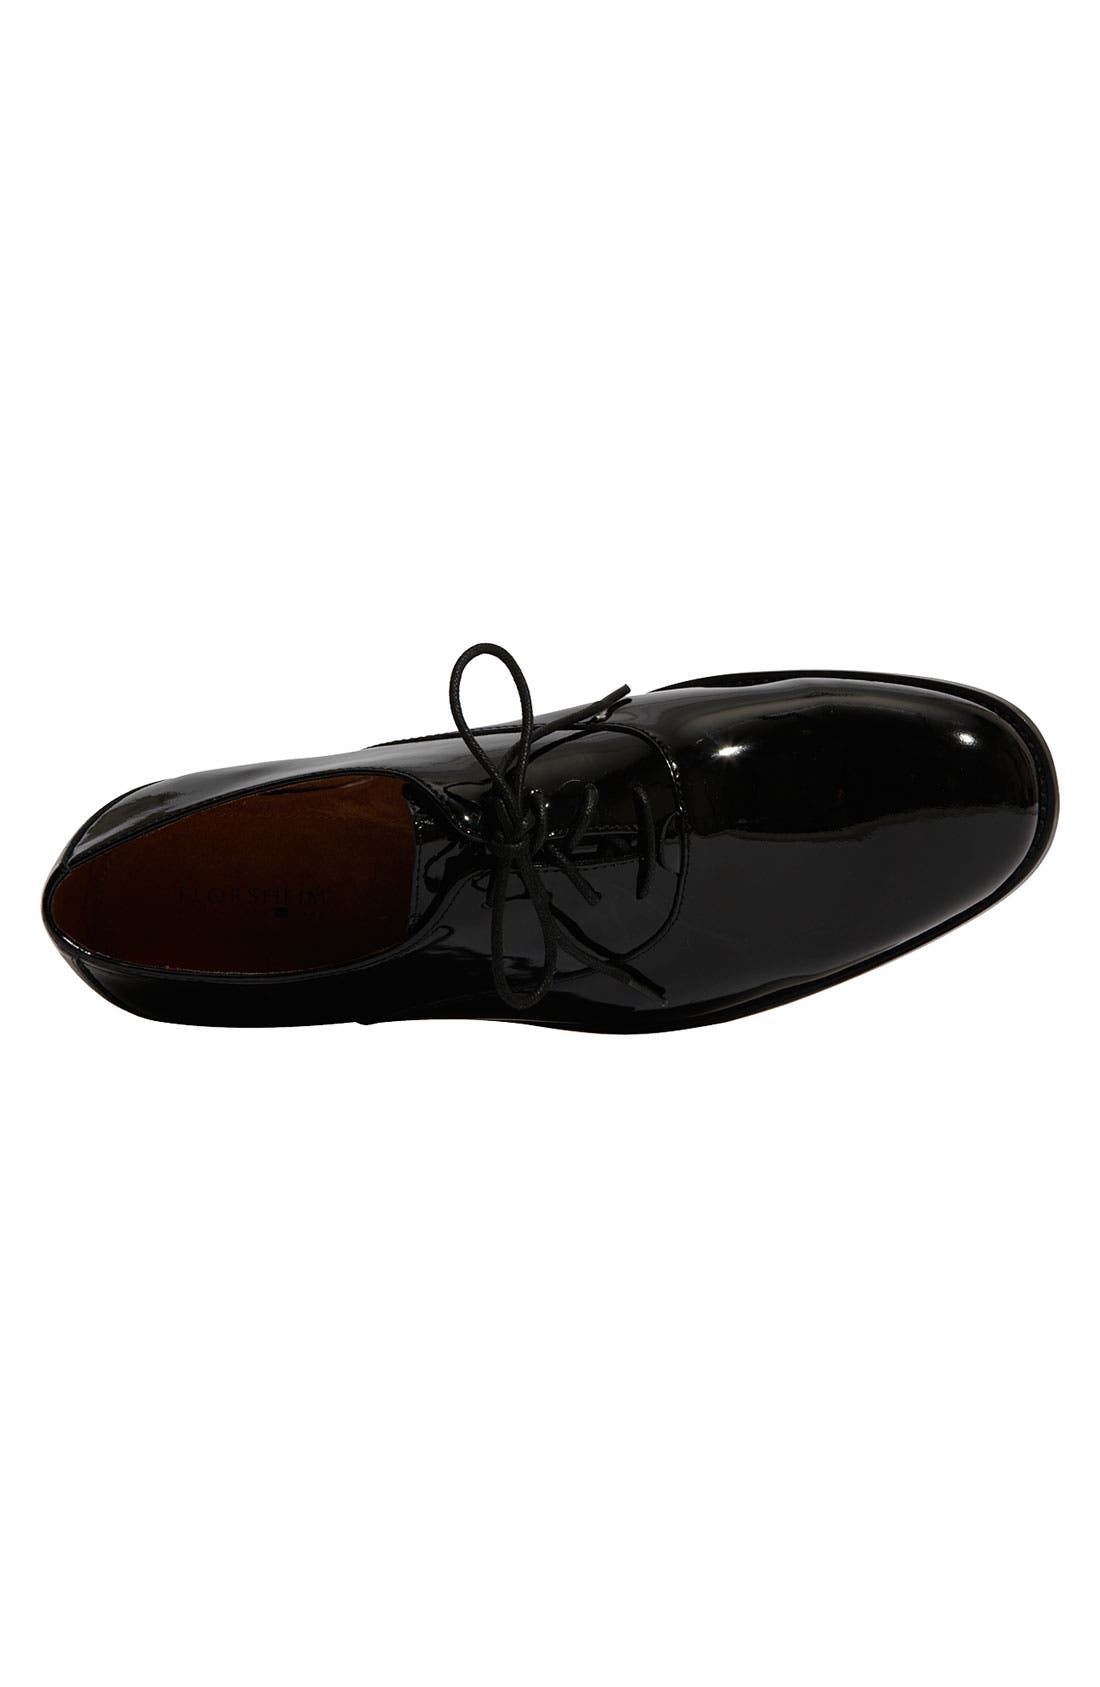 Alternate Image 3  - Florsheim 'Kingston' Patent Leather Oxford (Men)